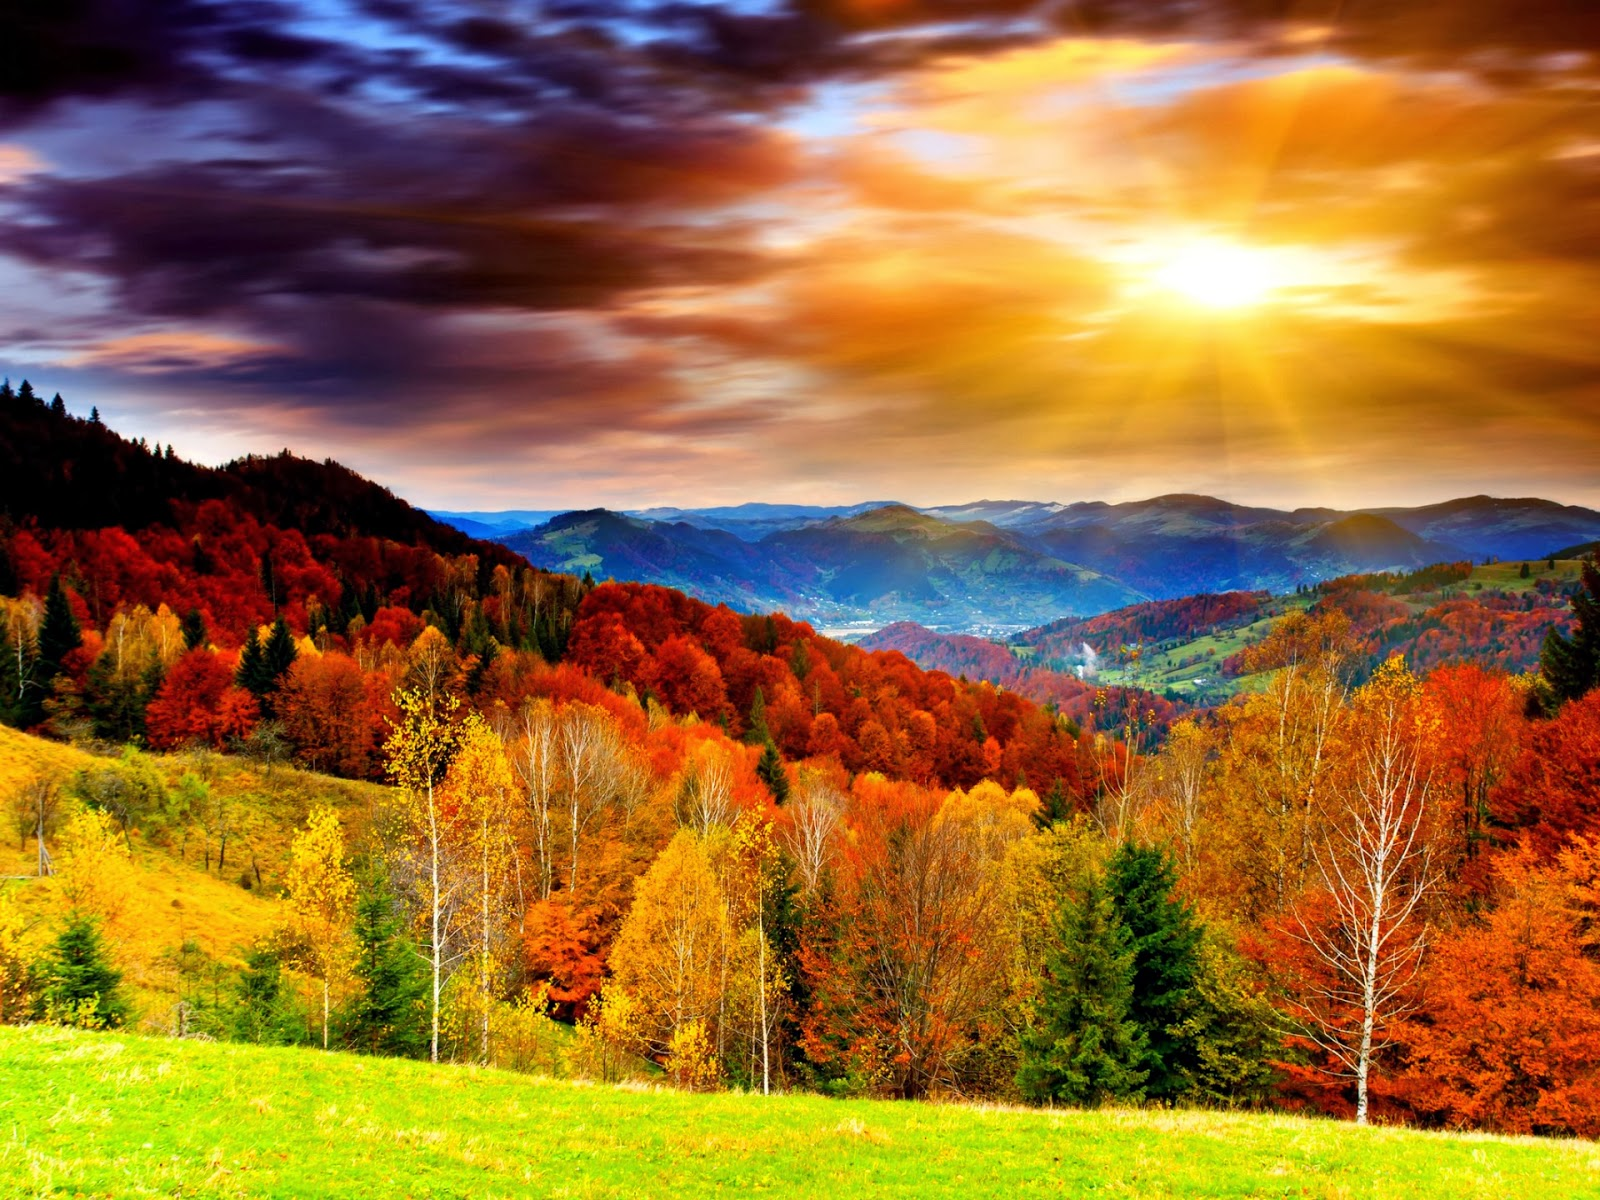 Download beautiful scenery wallpapers | Most beautiful ...